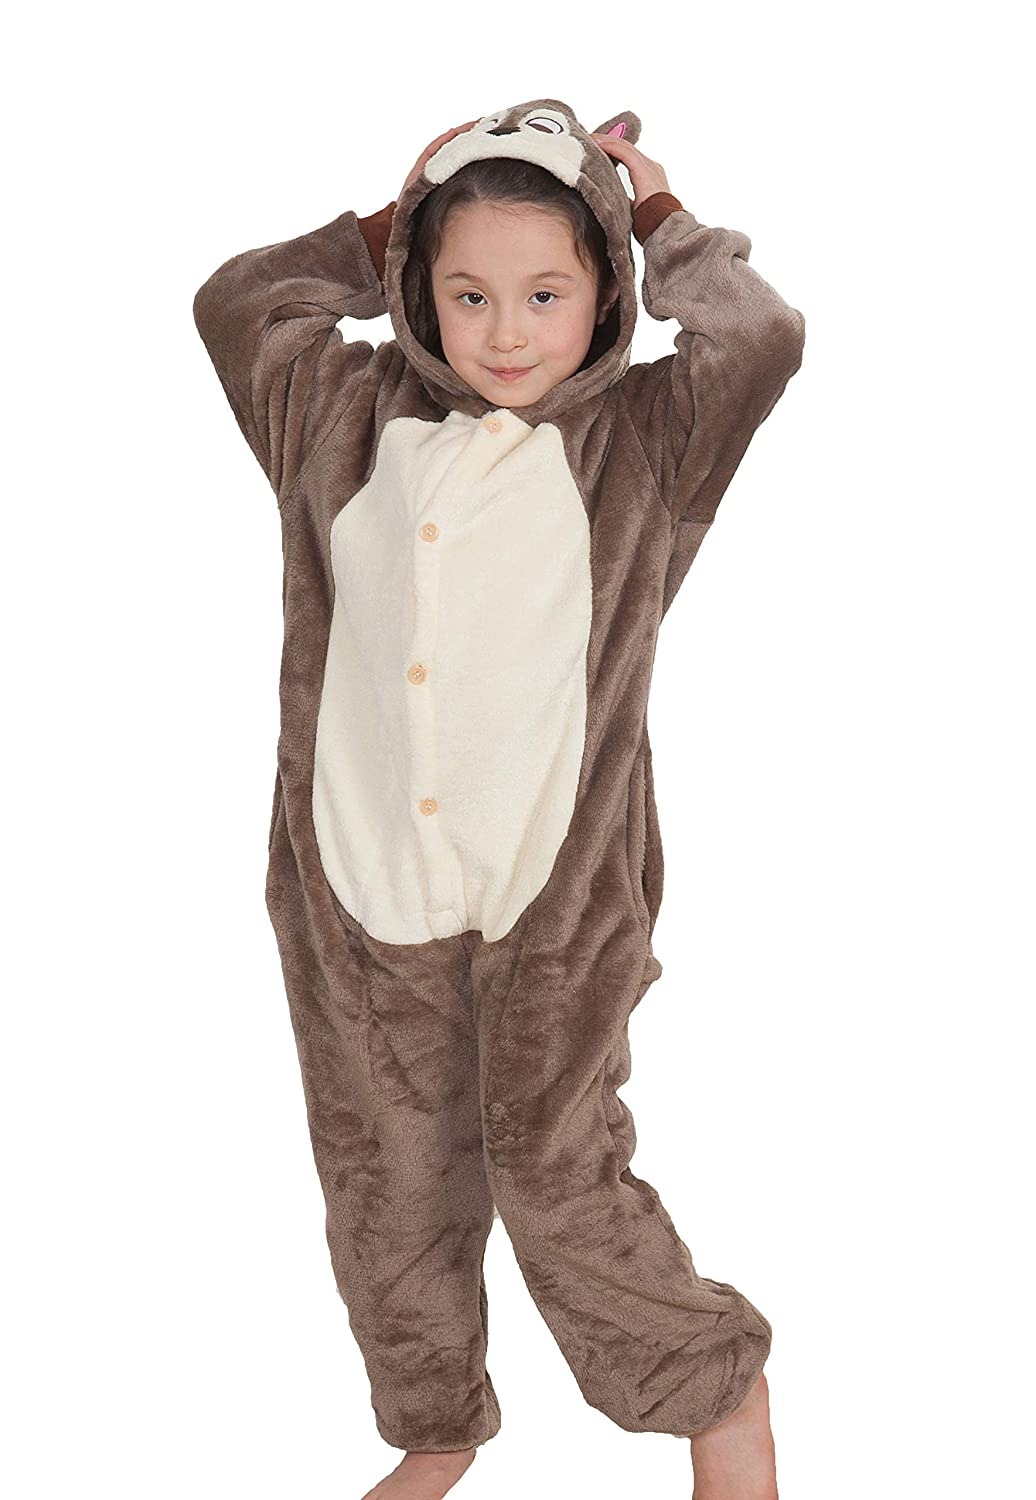 Auspicious beginning Chipmunk Animal Sleepwear Halloween Party Costumes Outfit Onesie Pajamas Adult Kids